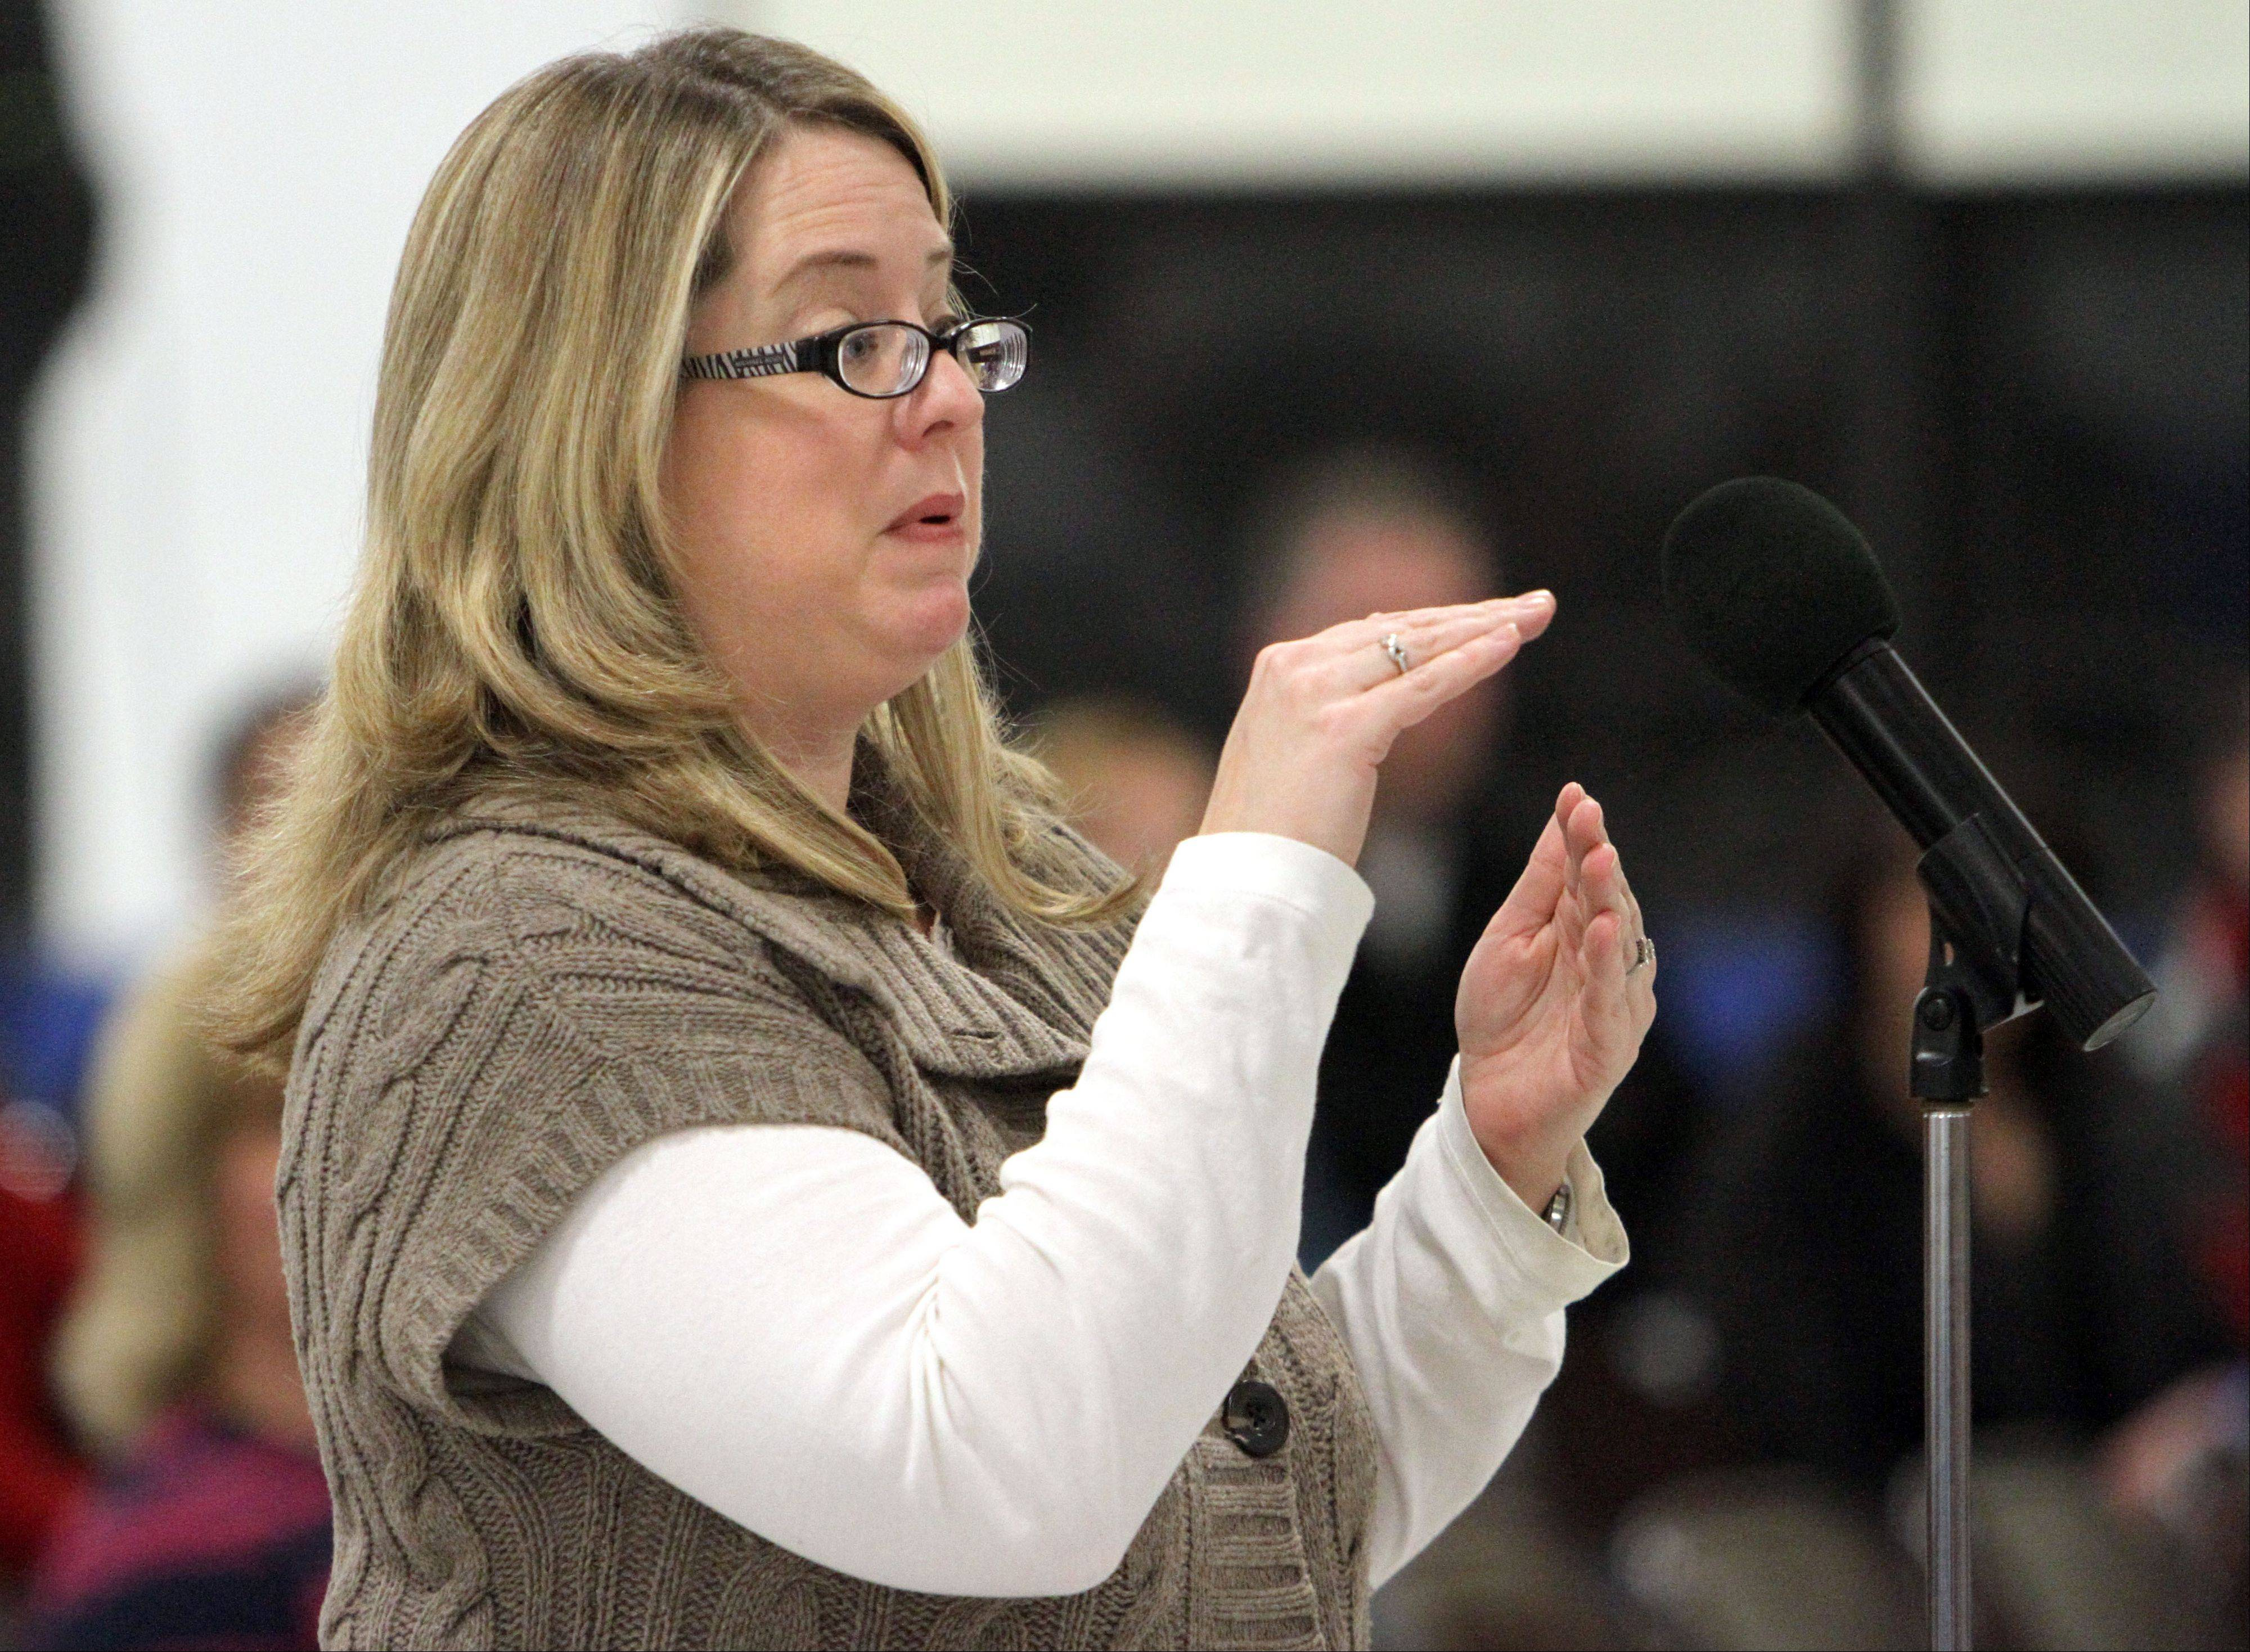 Sarah Watters of Grayslake asks questions during a town-hall meeting at Grayslake Middle School hosted by Grayslake Elementary District 46 Wednesday night. The meeting focused on issues related to a possible teachers strike.